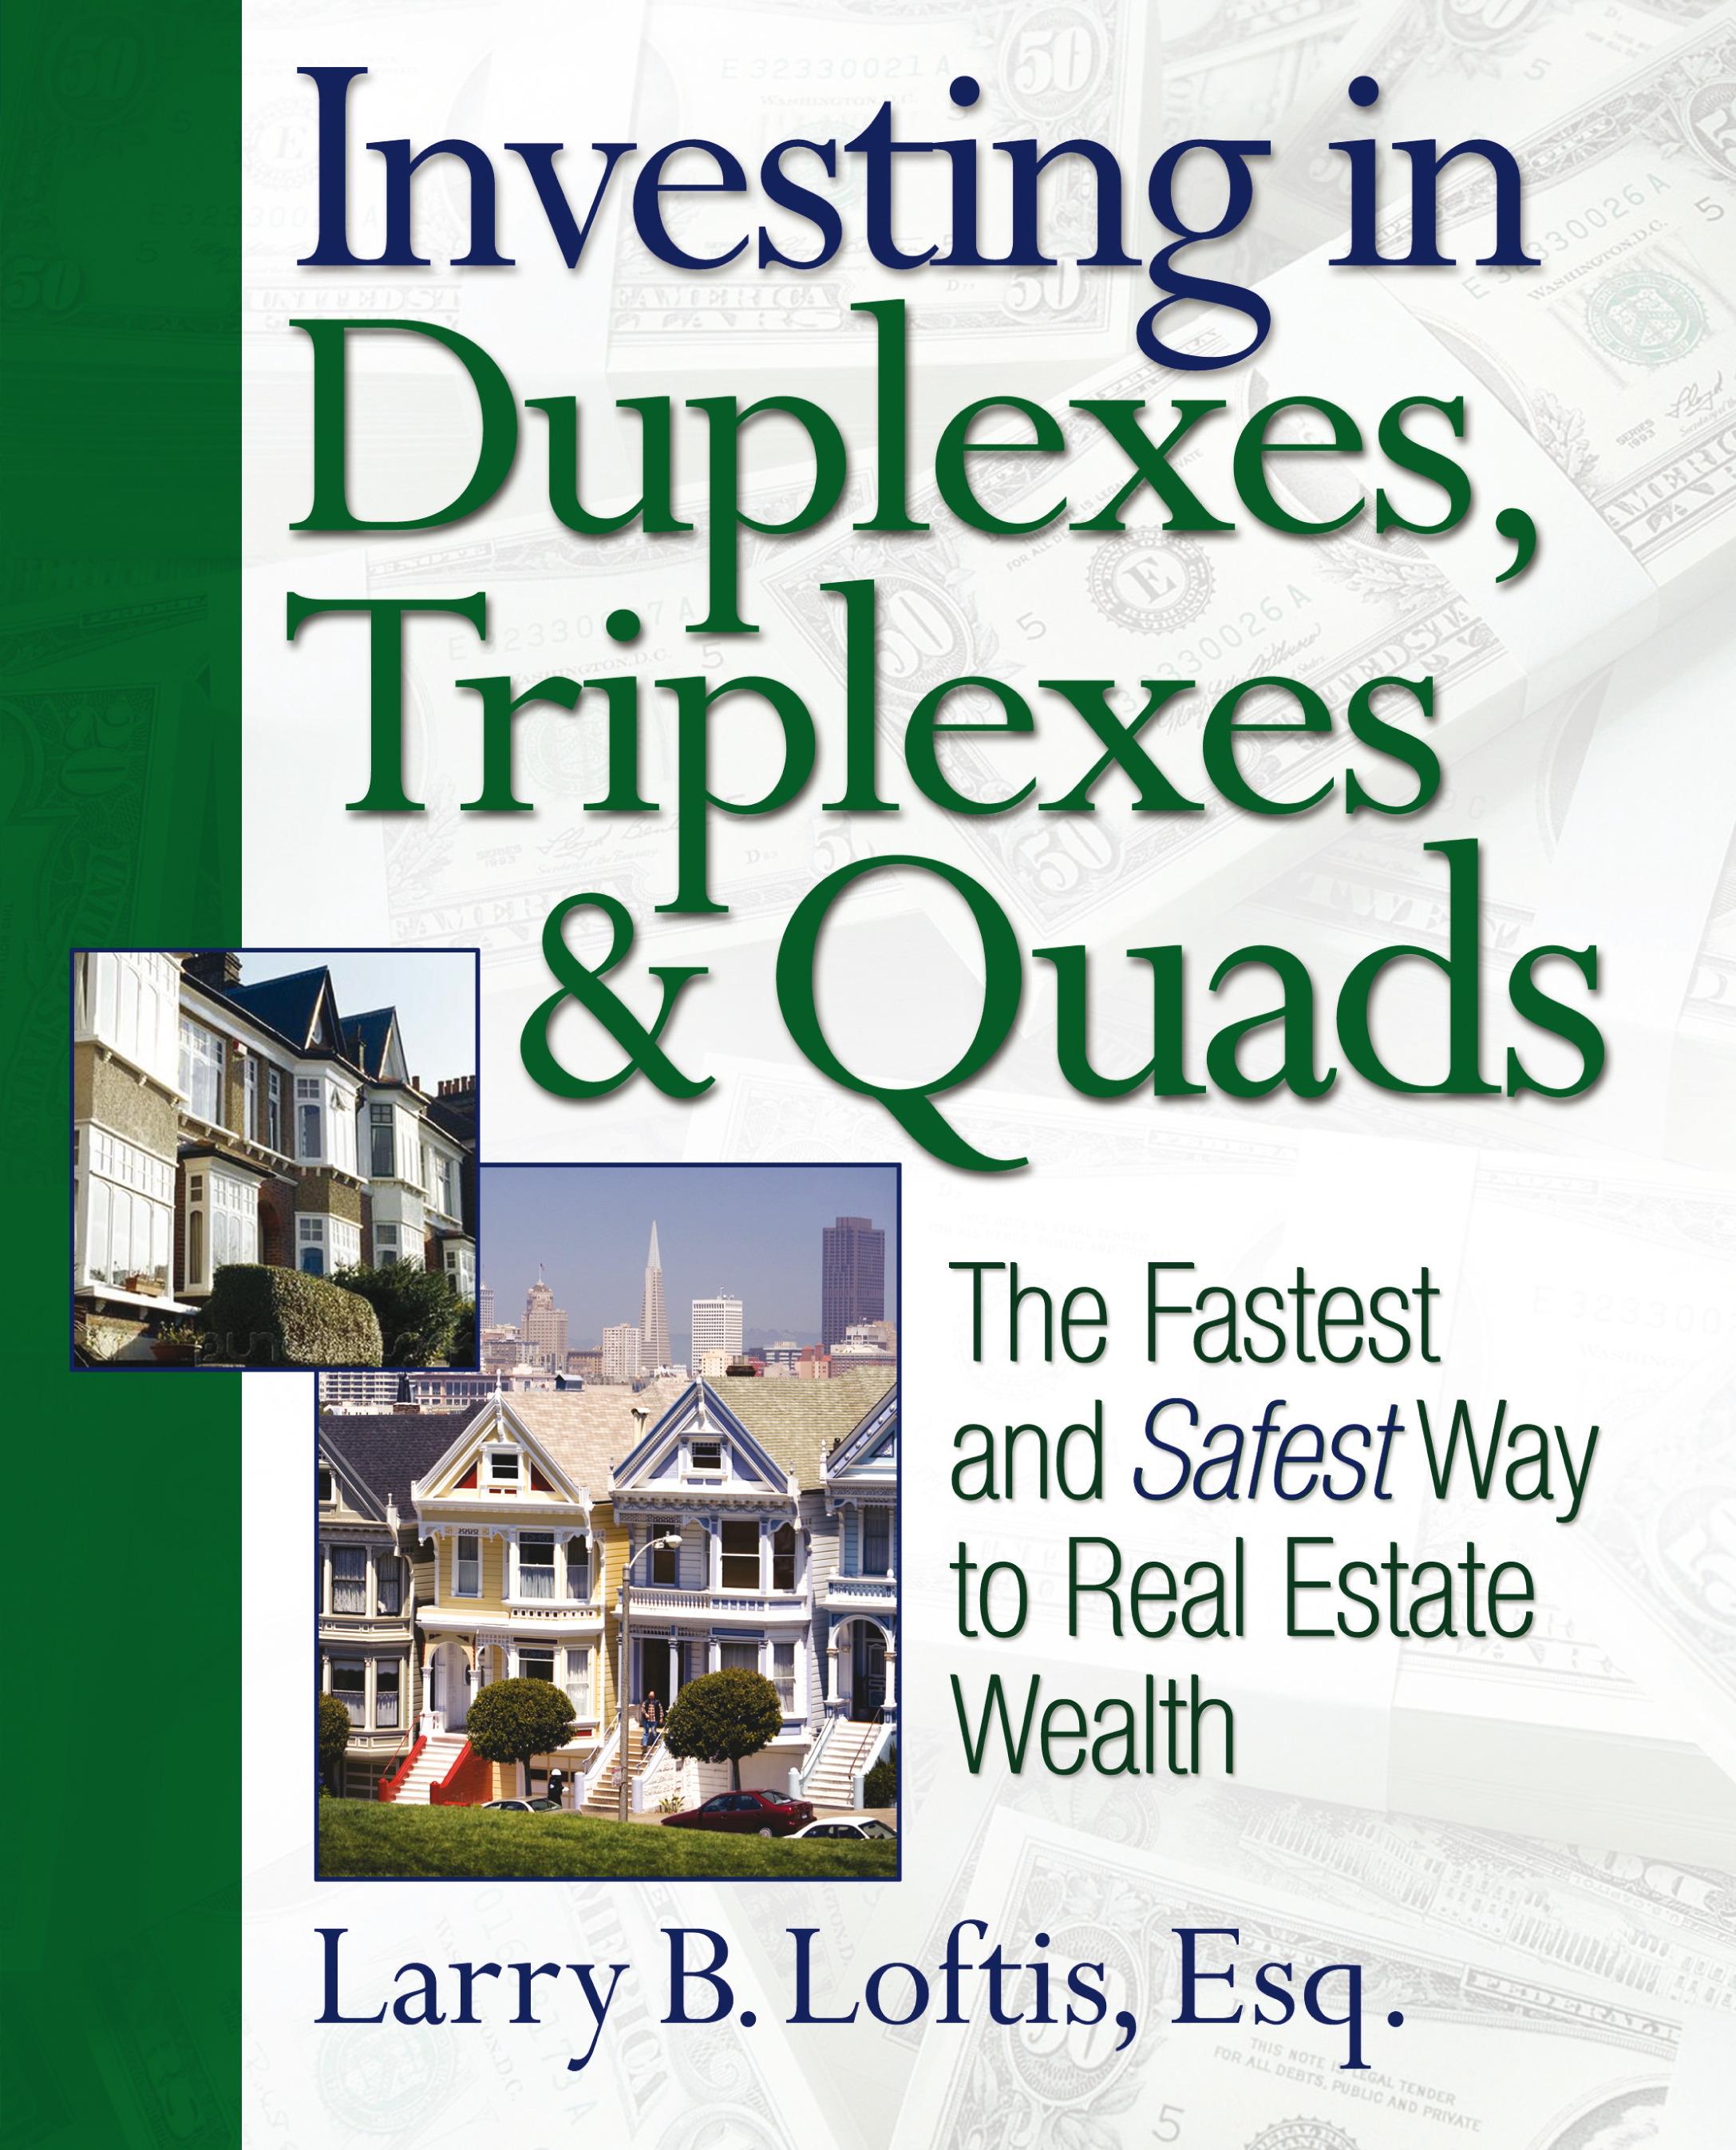 Analyzing a Duplex Investment!